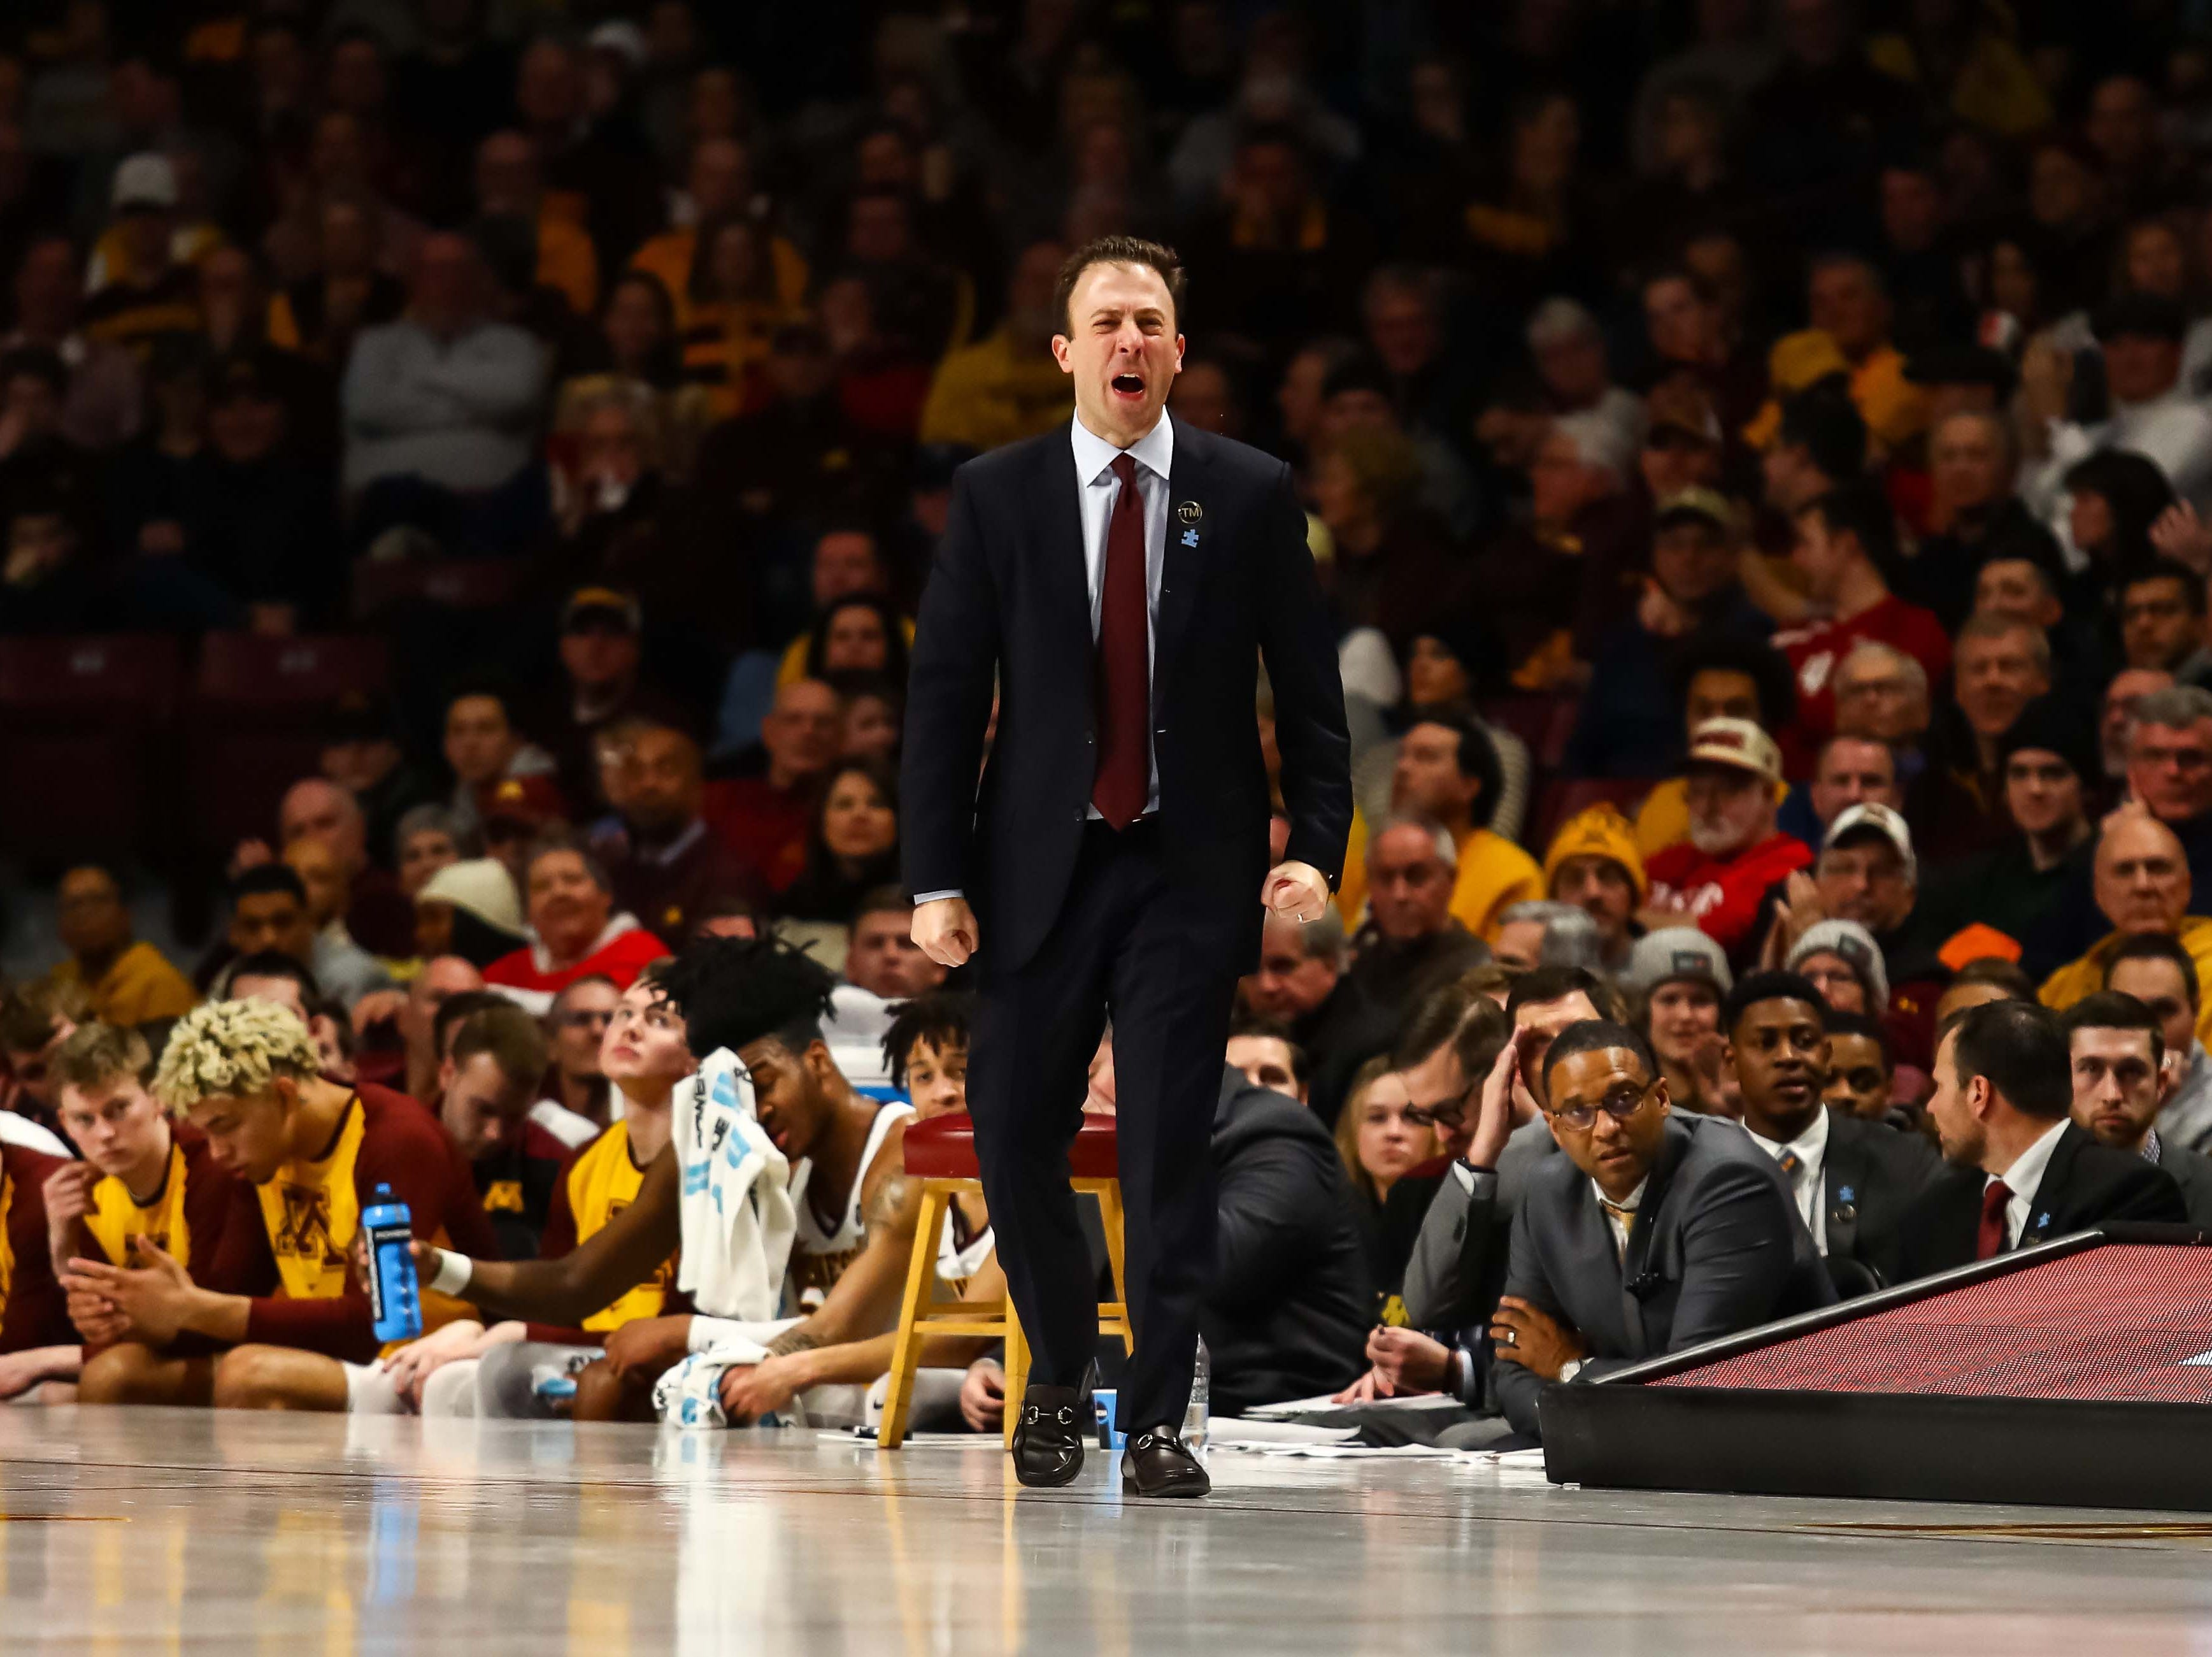 Feb 16, 2019; Minneapolis, MN, USA; Minnesota Golden Gophers head coach Richard Pitino yells in the second half against the Indiana Hoosiers at Williams Arena. The Minnesota Golden Gophers defeatd the Indiana Hoosiers 84-63. Mandatory Credit: David Berding-USA TODAY Sports